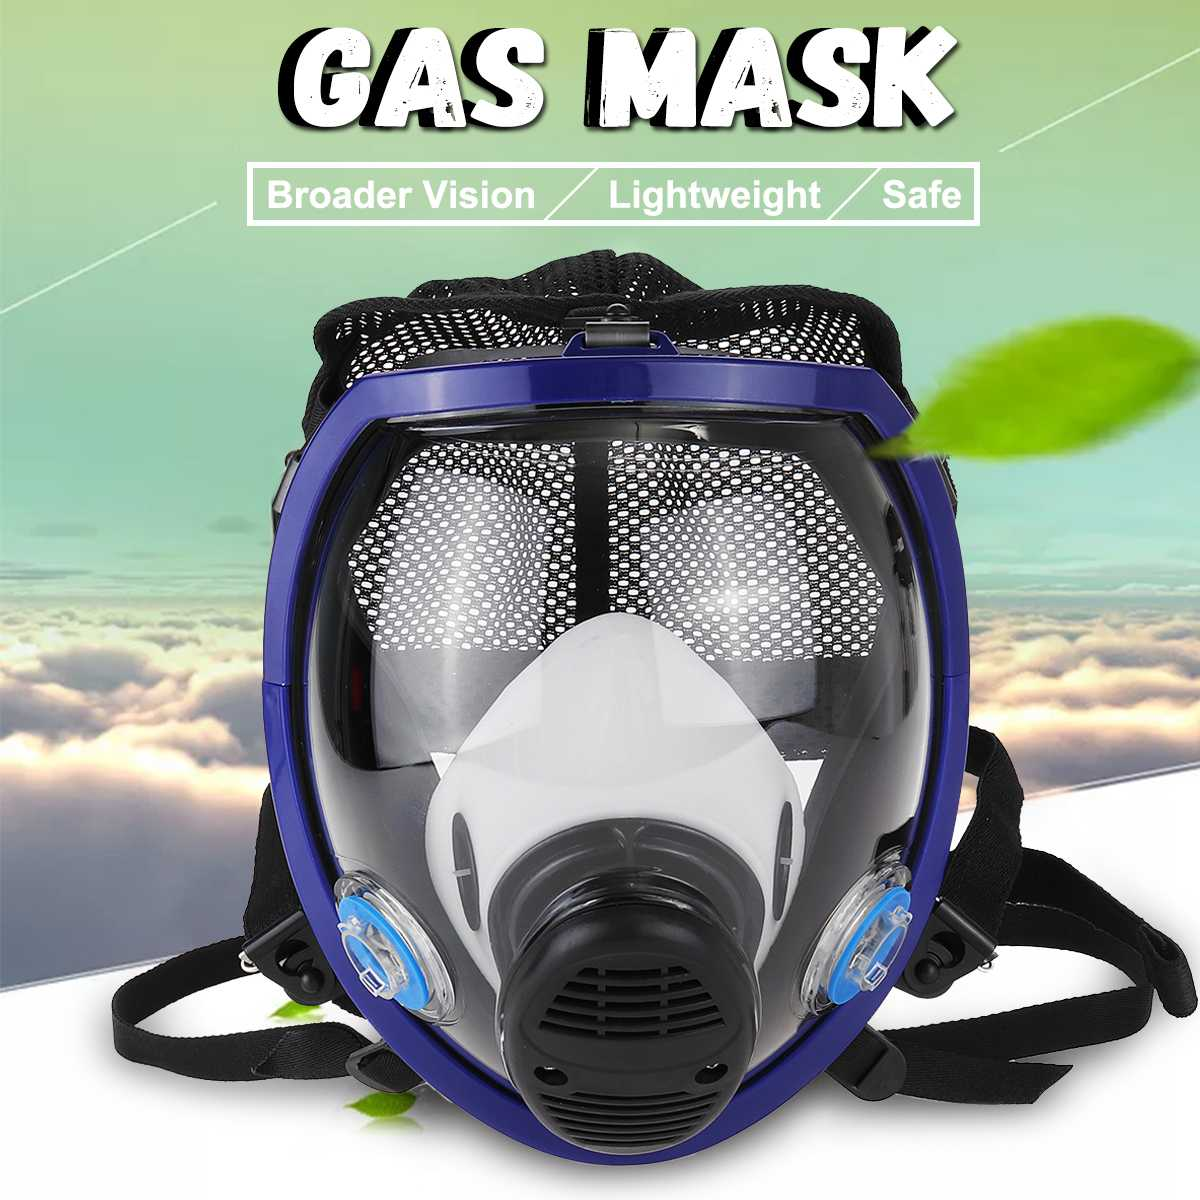 Full Face Chemical Mask Gas Mask Acid Dust Respirator Paint Pesticide Spray Silicone Filter Laboratory Welding